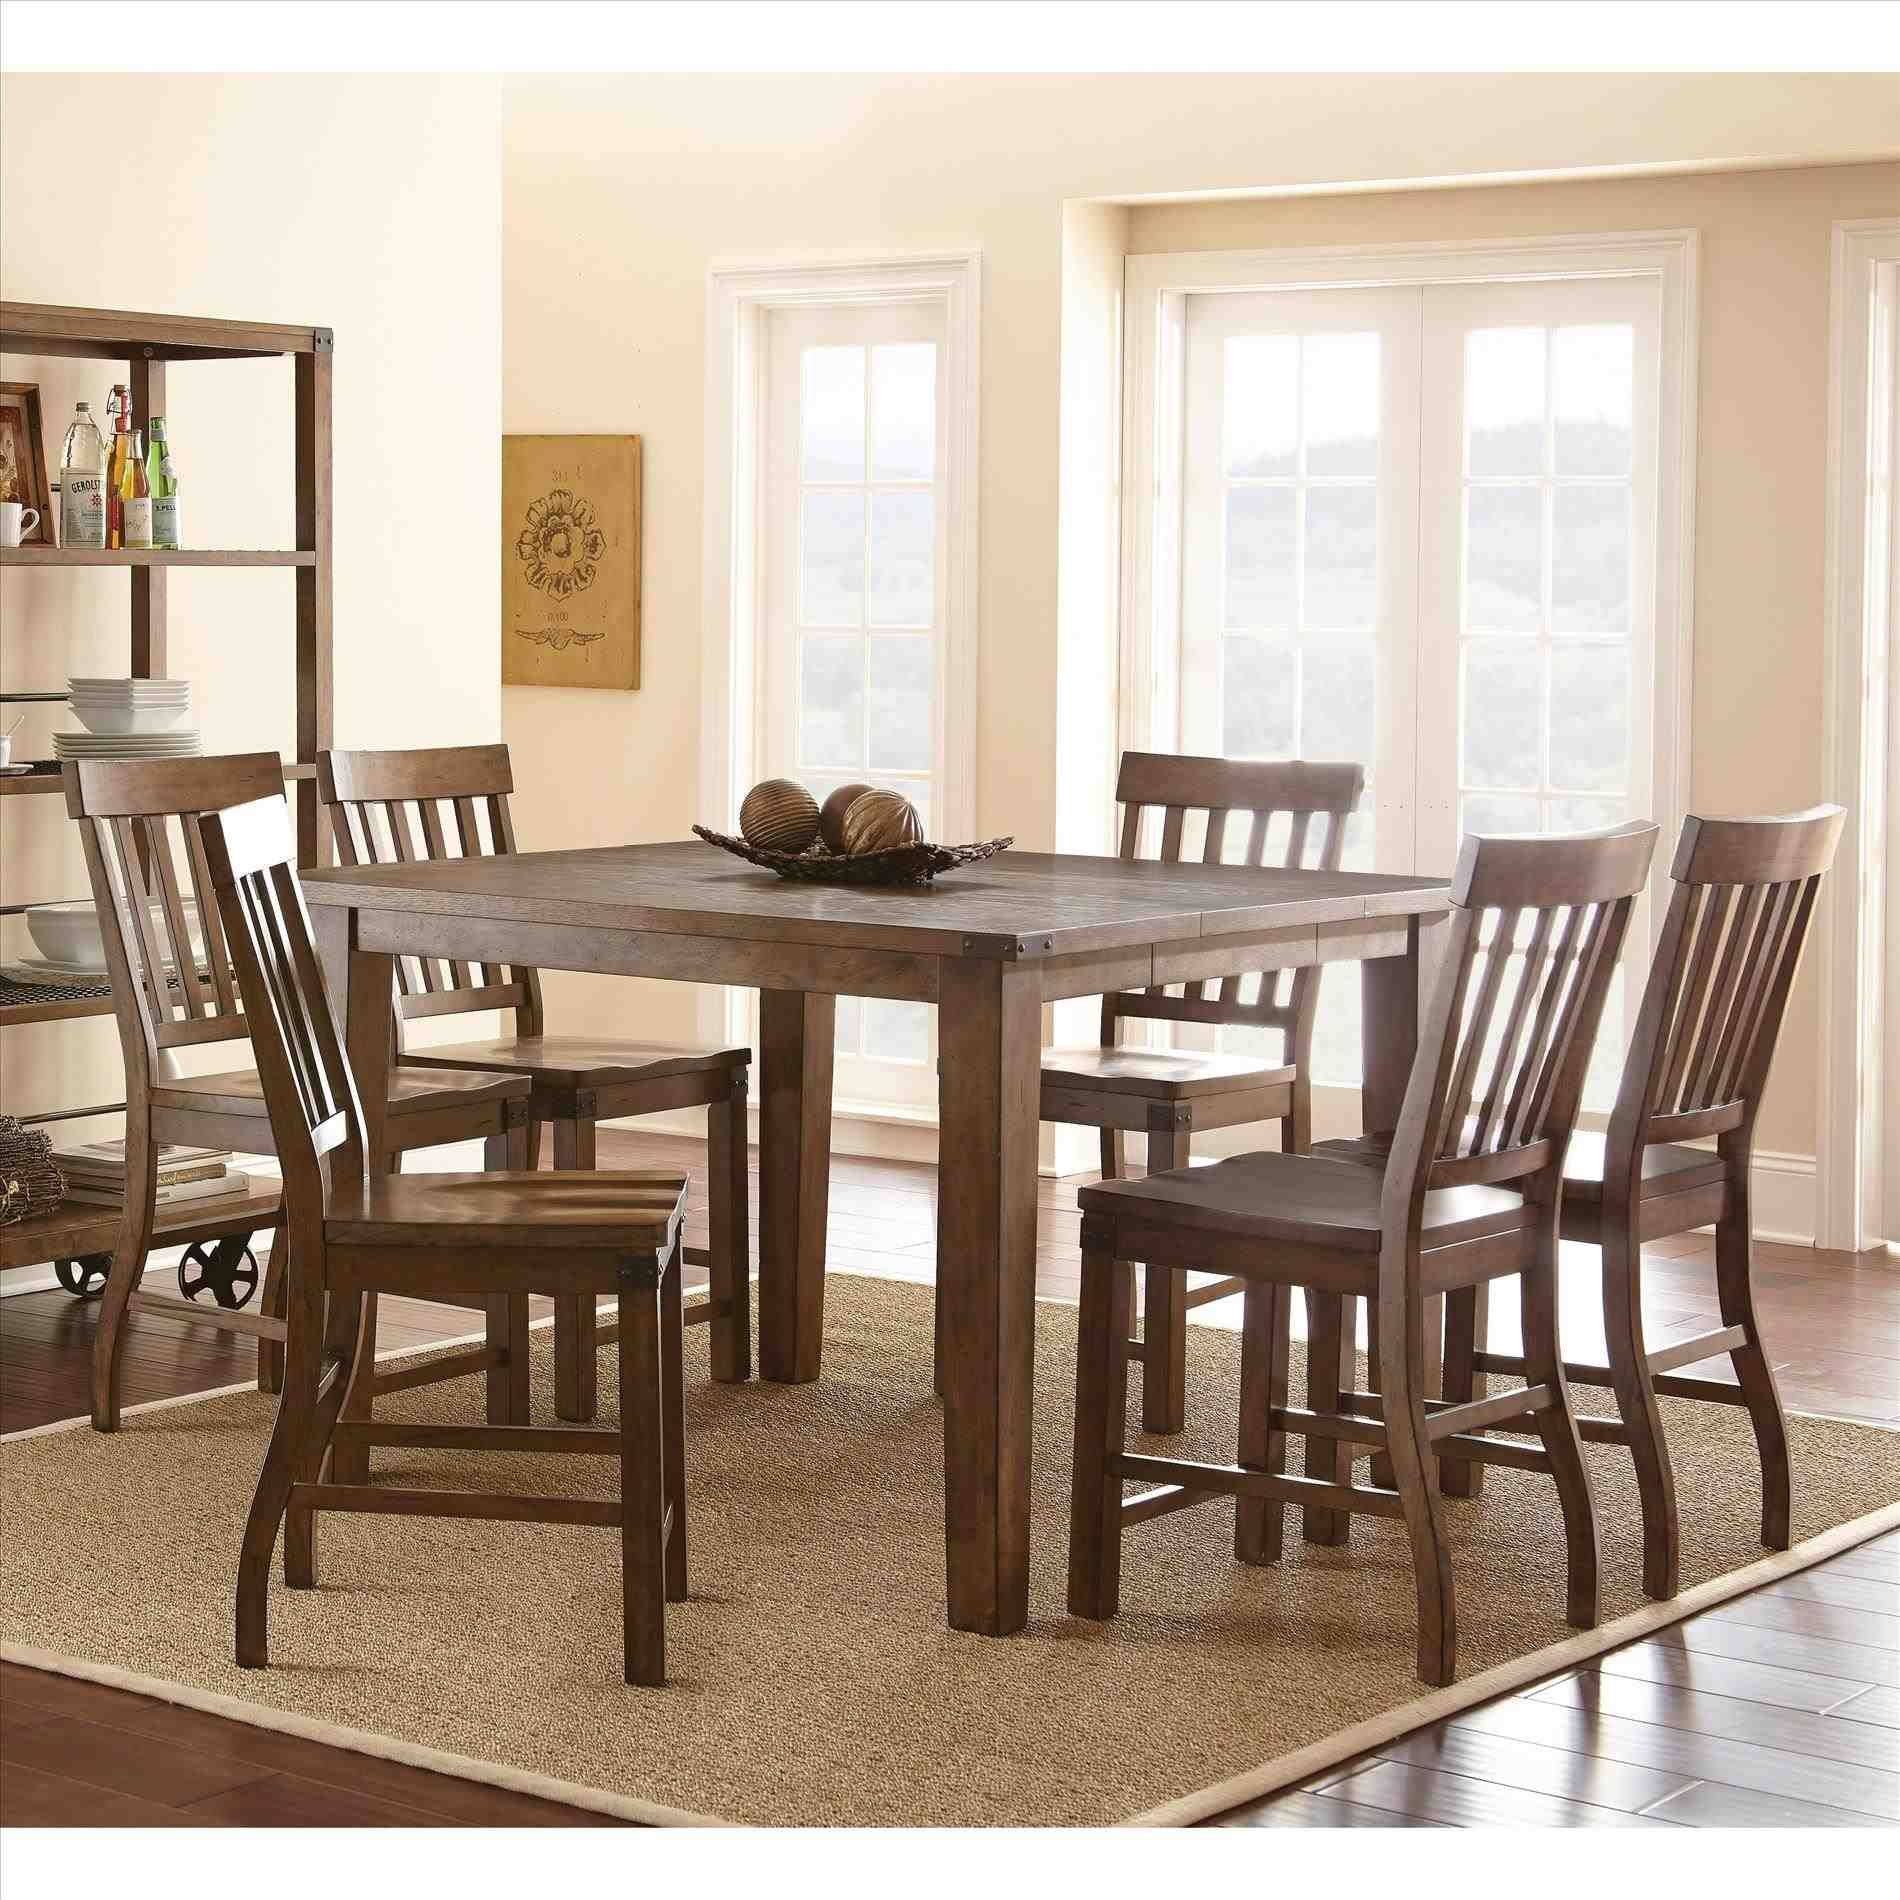 new post tall dining table walmart - Walmart Kitchen Tables